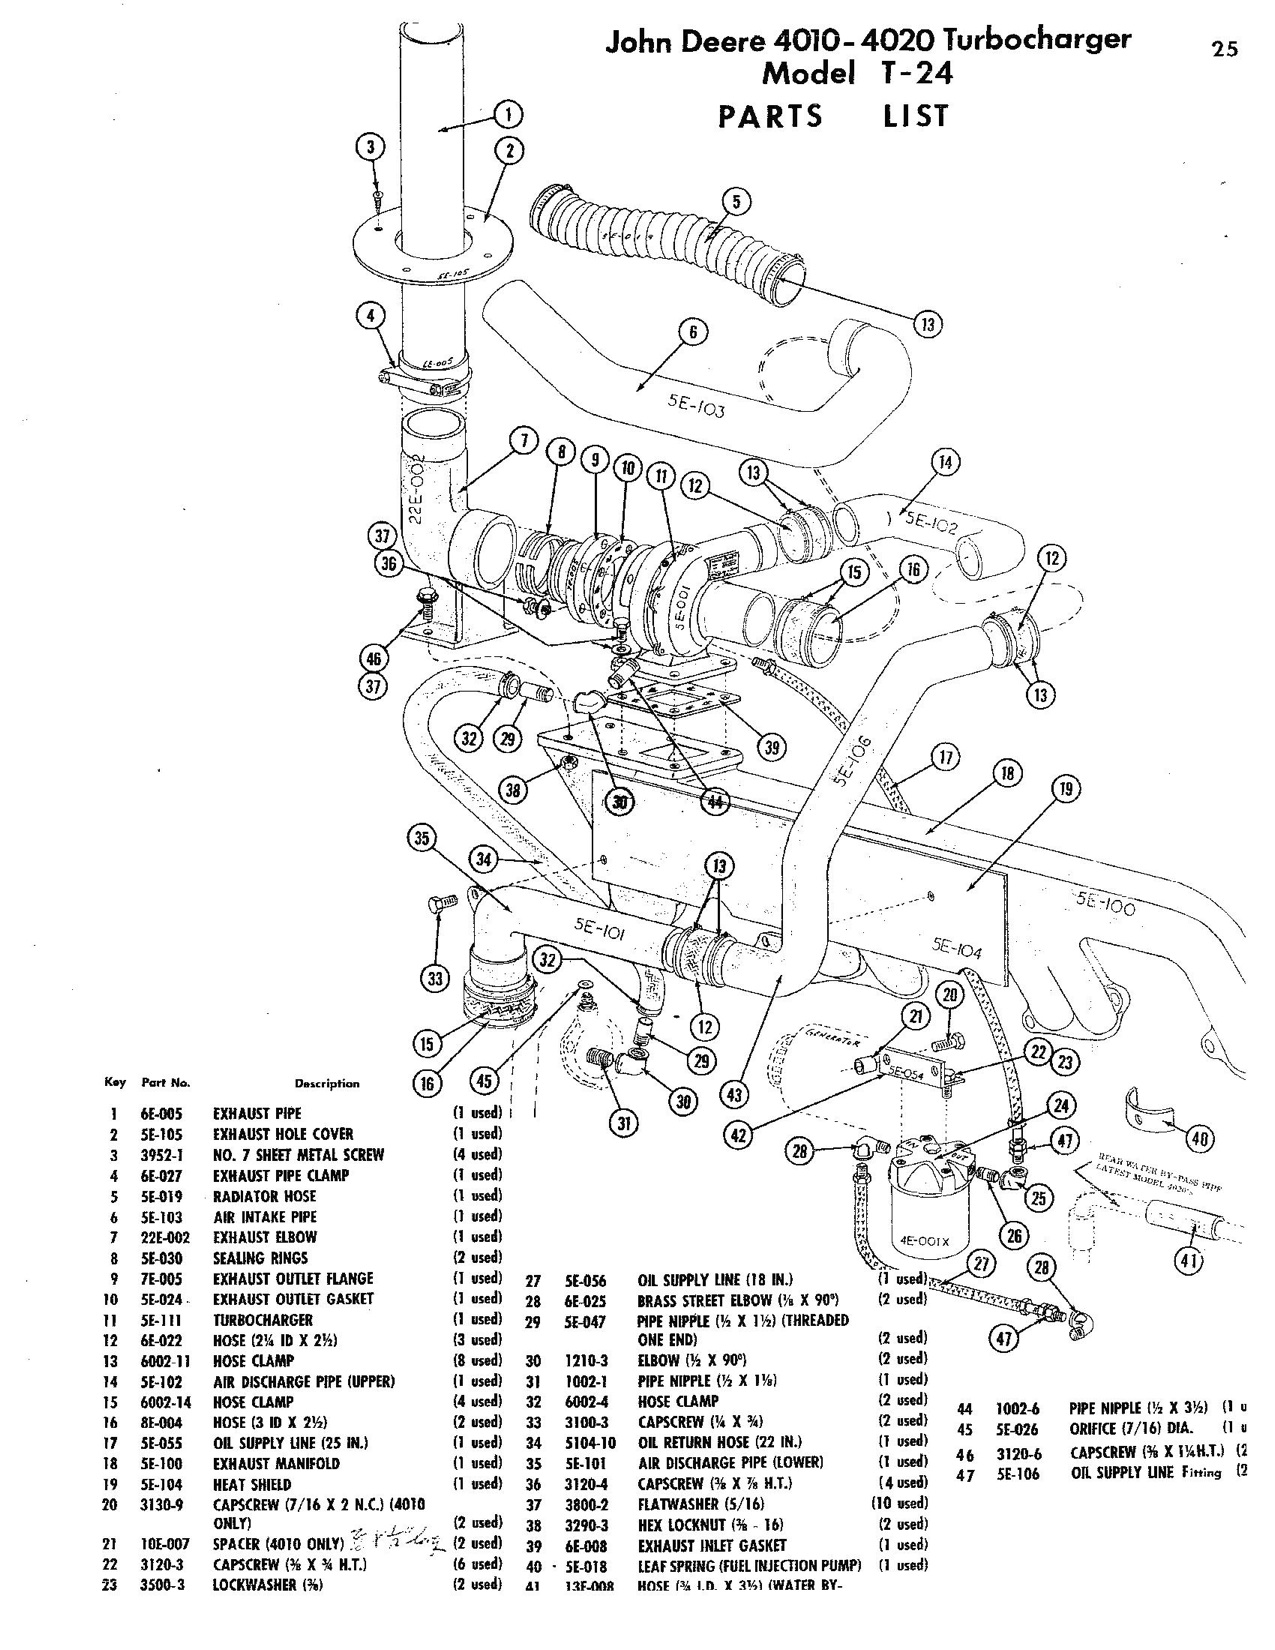 John Deere Radiator Diagram Electrical Schematics Jd 630 Wiring 4020 T 24 Turbo Kits Mw Rajay Garrett Bottom